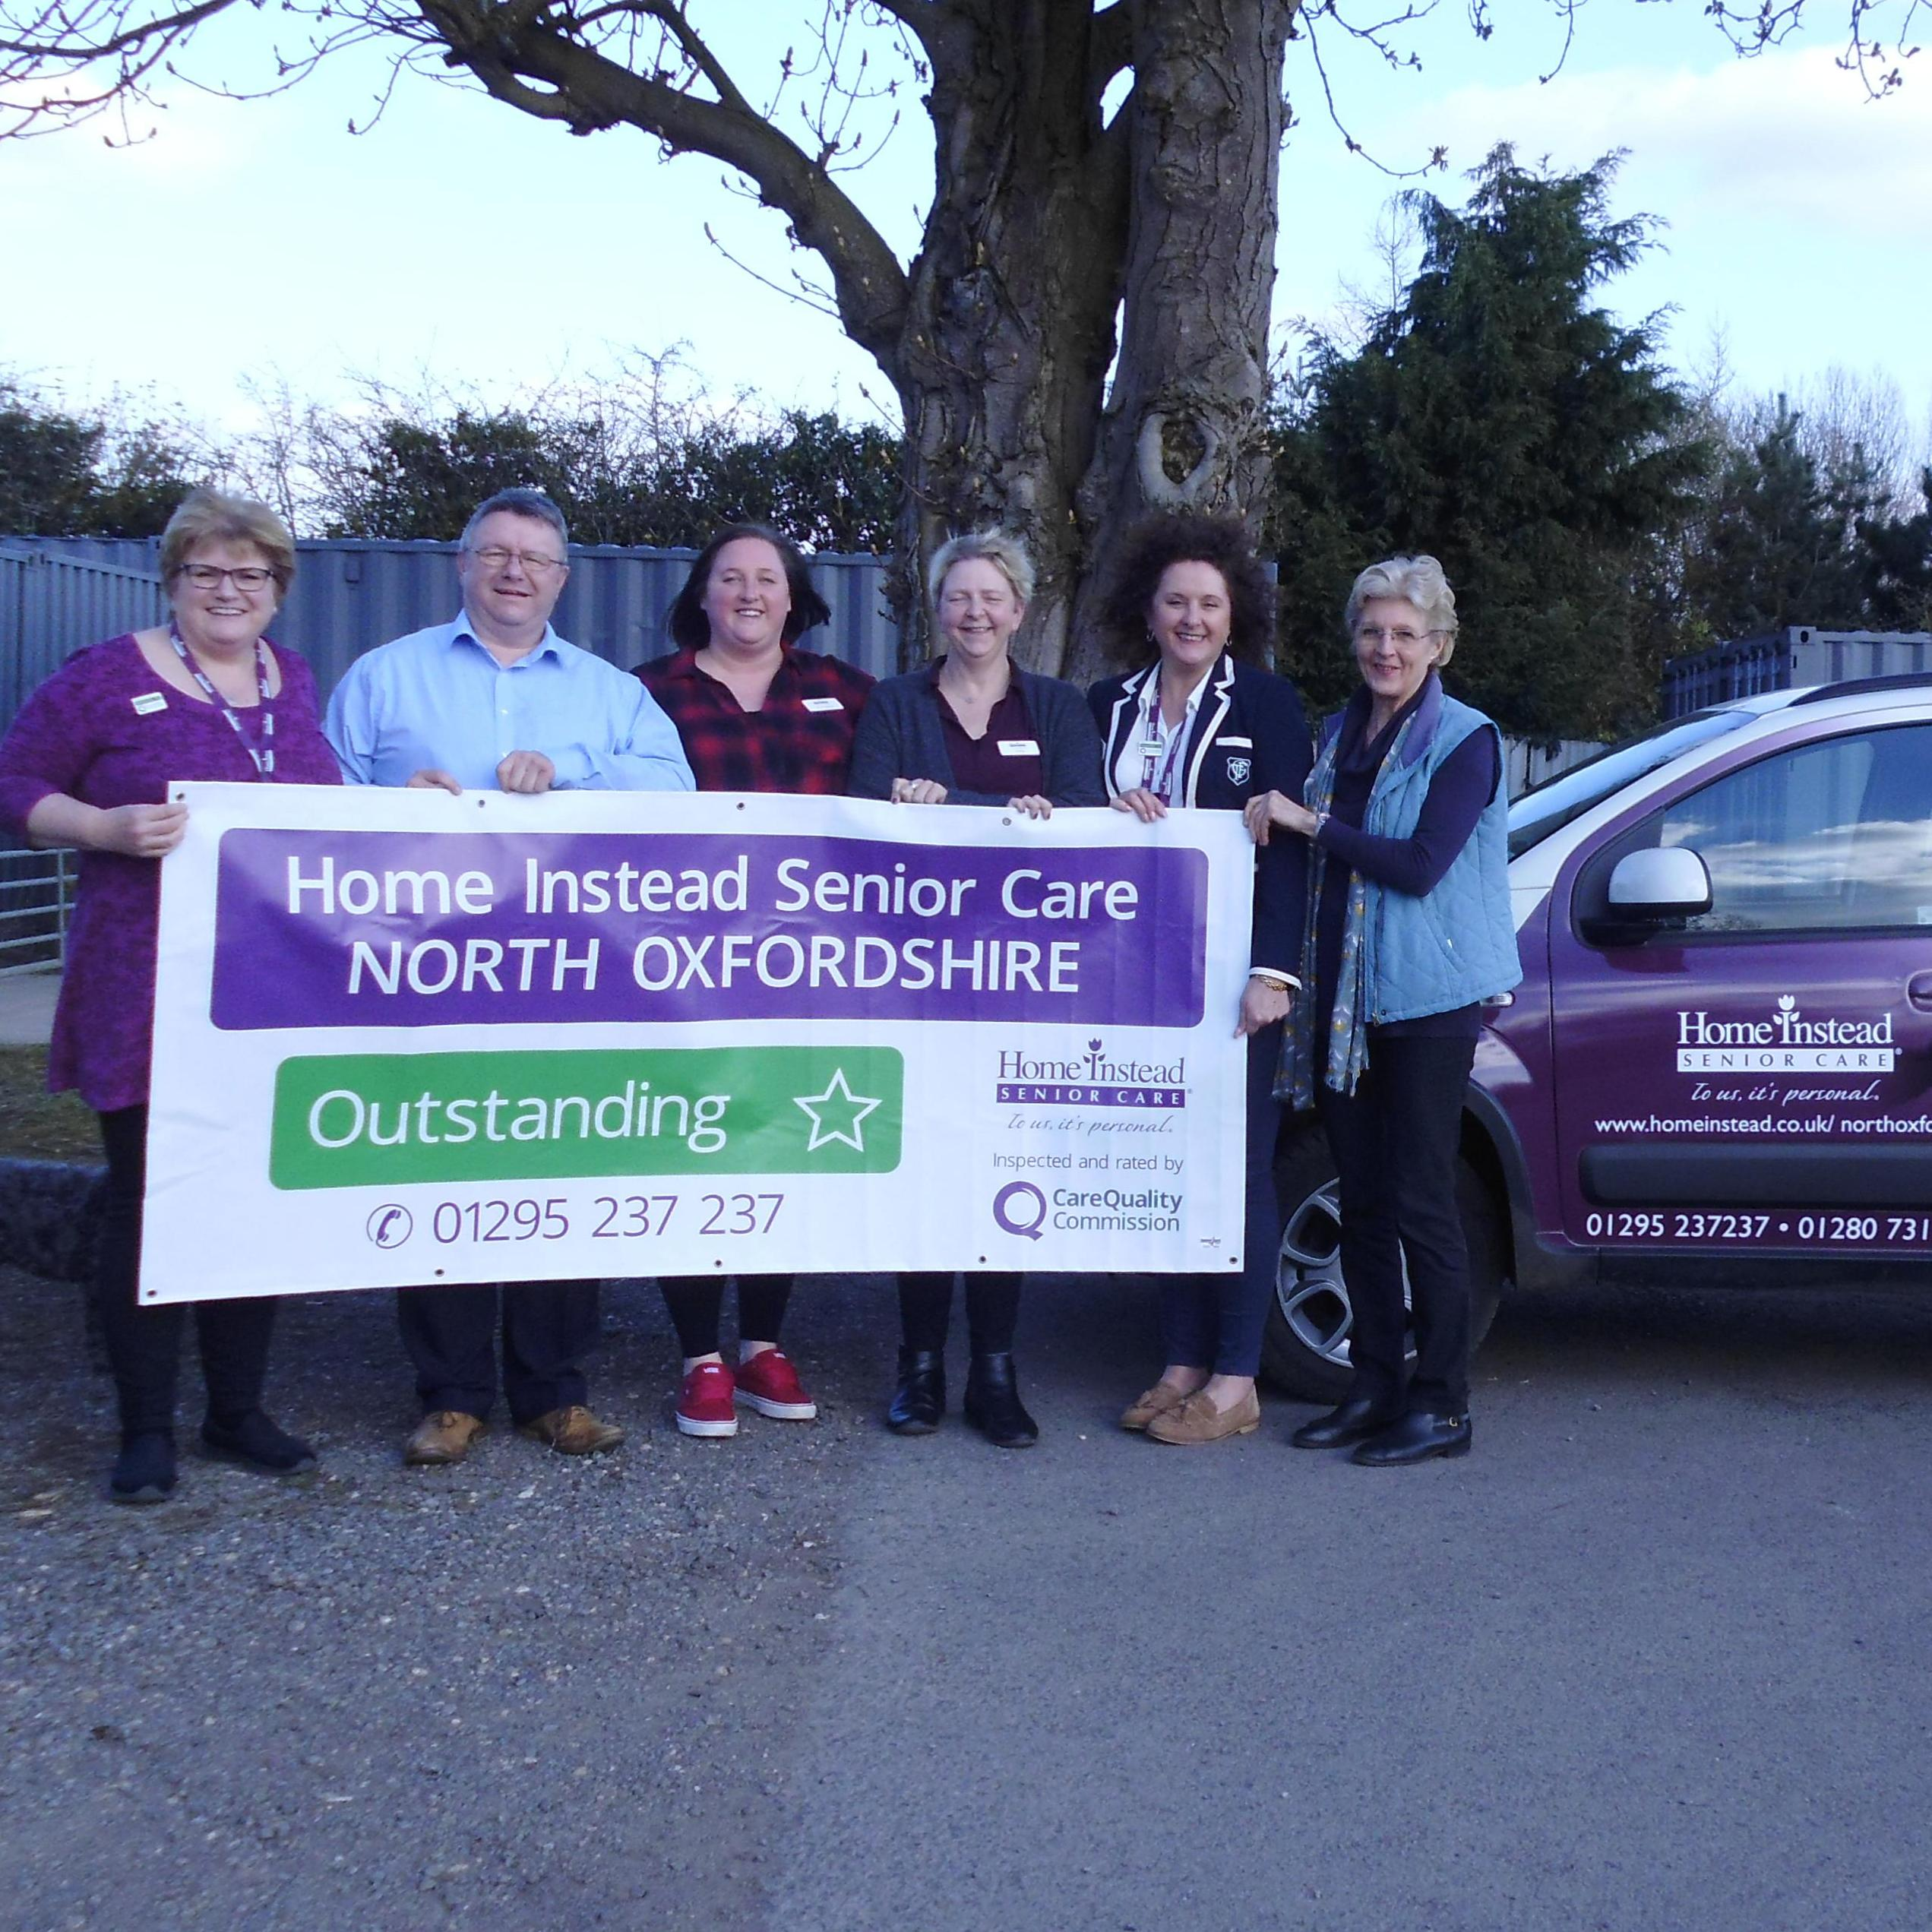 Home Instead North Oxfordshire achieve outstanding rating by CQC